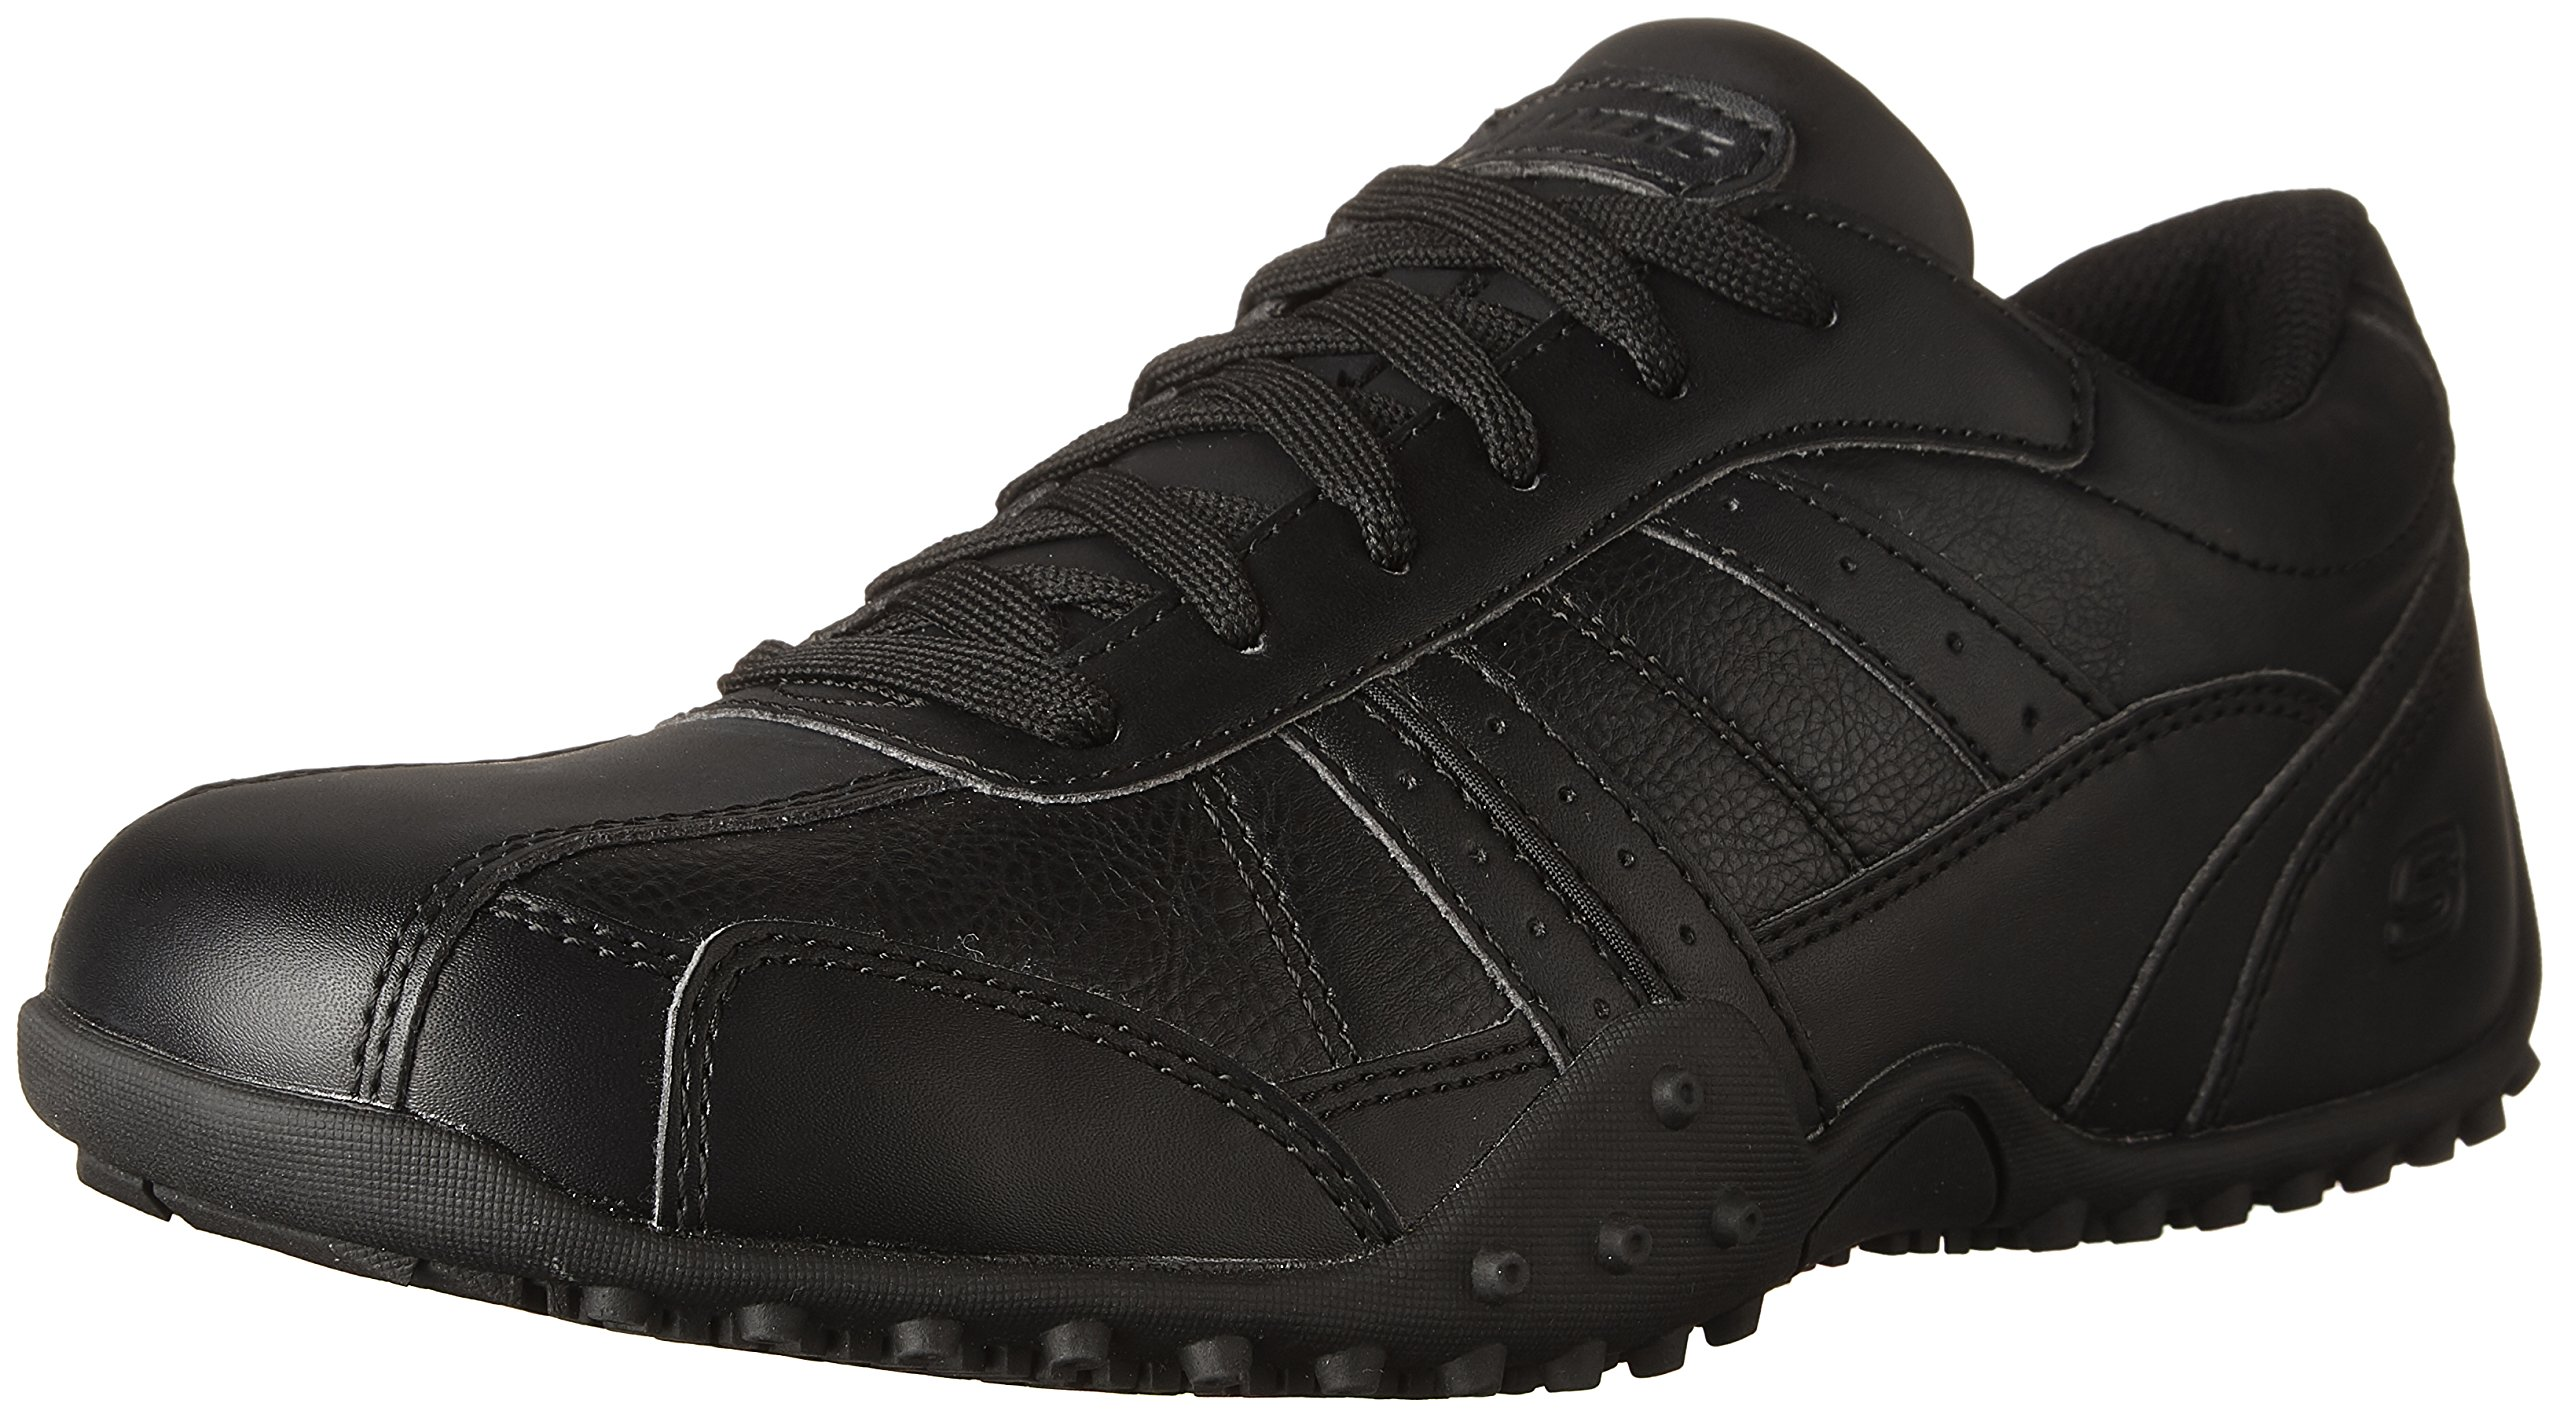 Skechers for Work Men's Elston Relaxed Fit Resistant Work Shoe, Black, 11 M US by Skechers